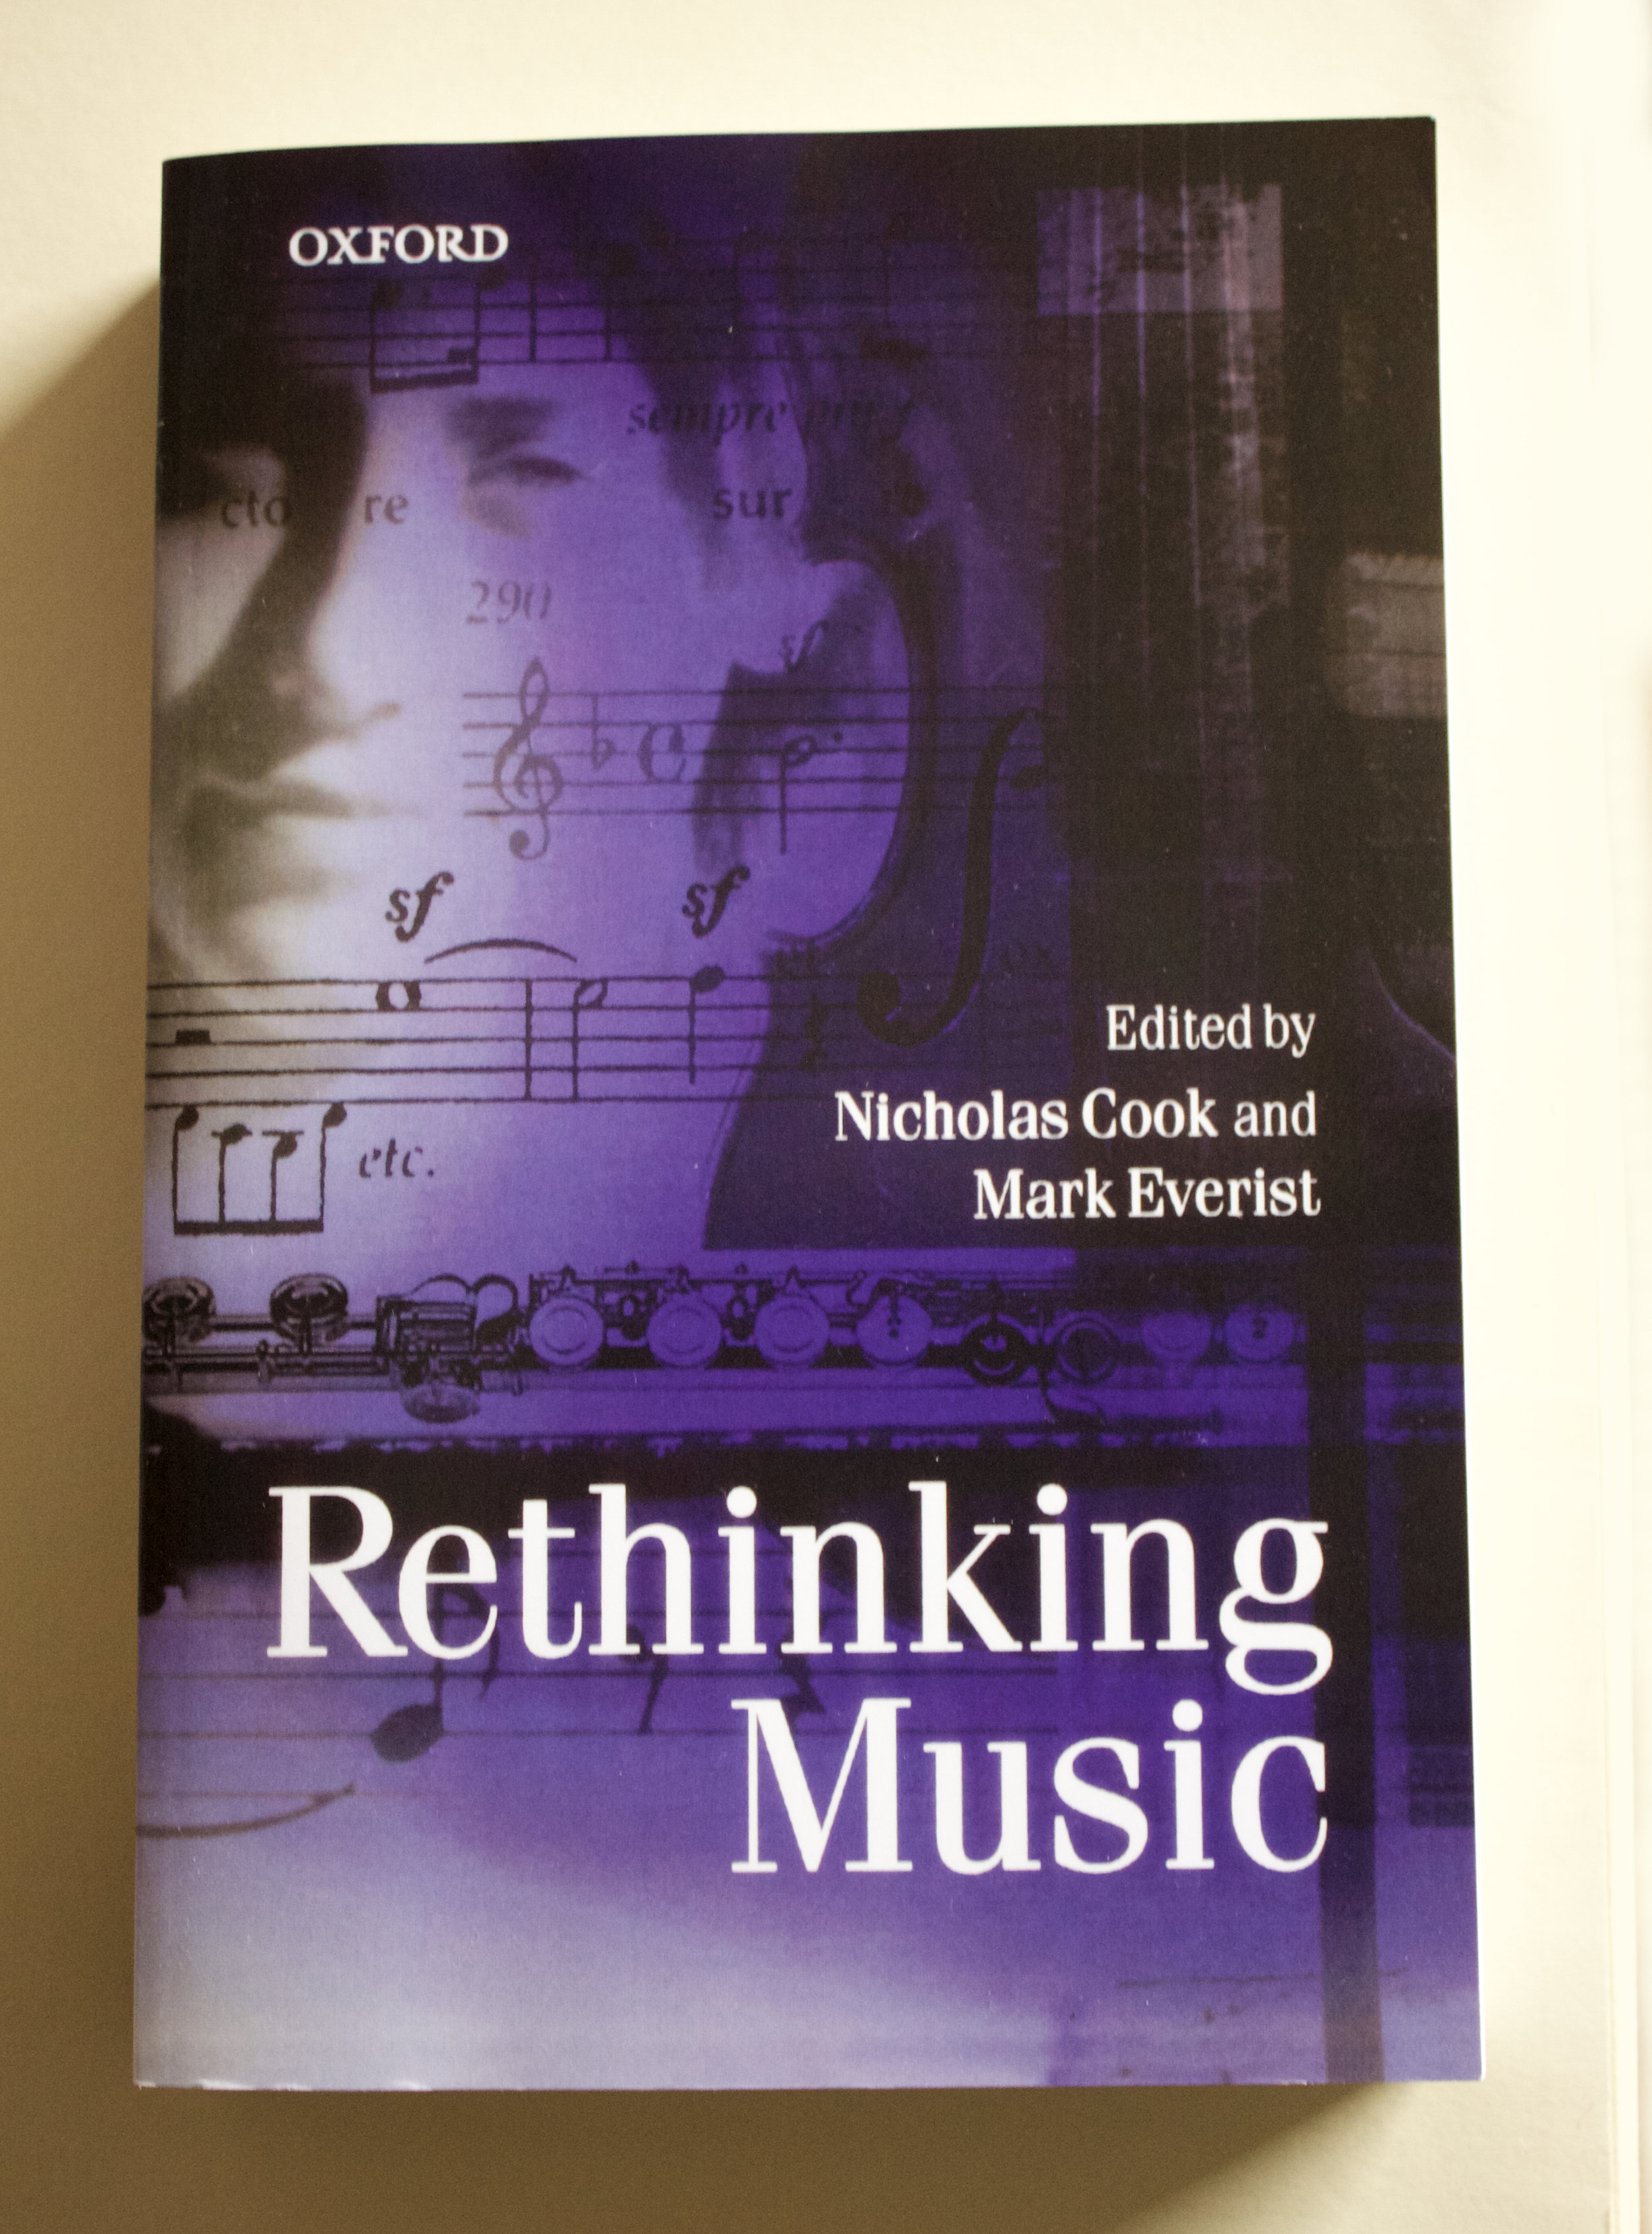 Copy of Rethinking Music - edited by Nicholas Cook and Mark Everist (OUP, 2001)